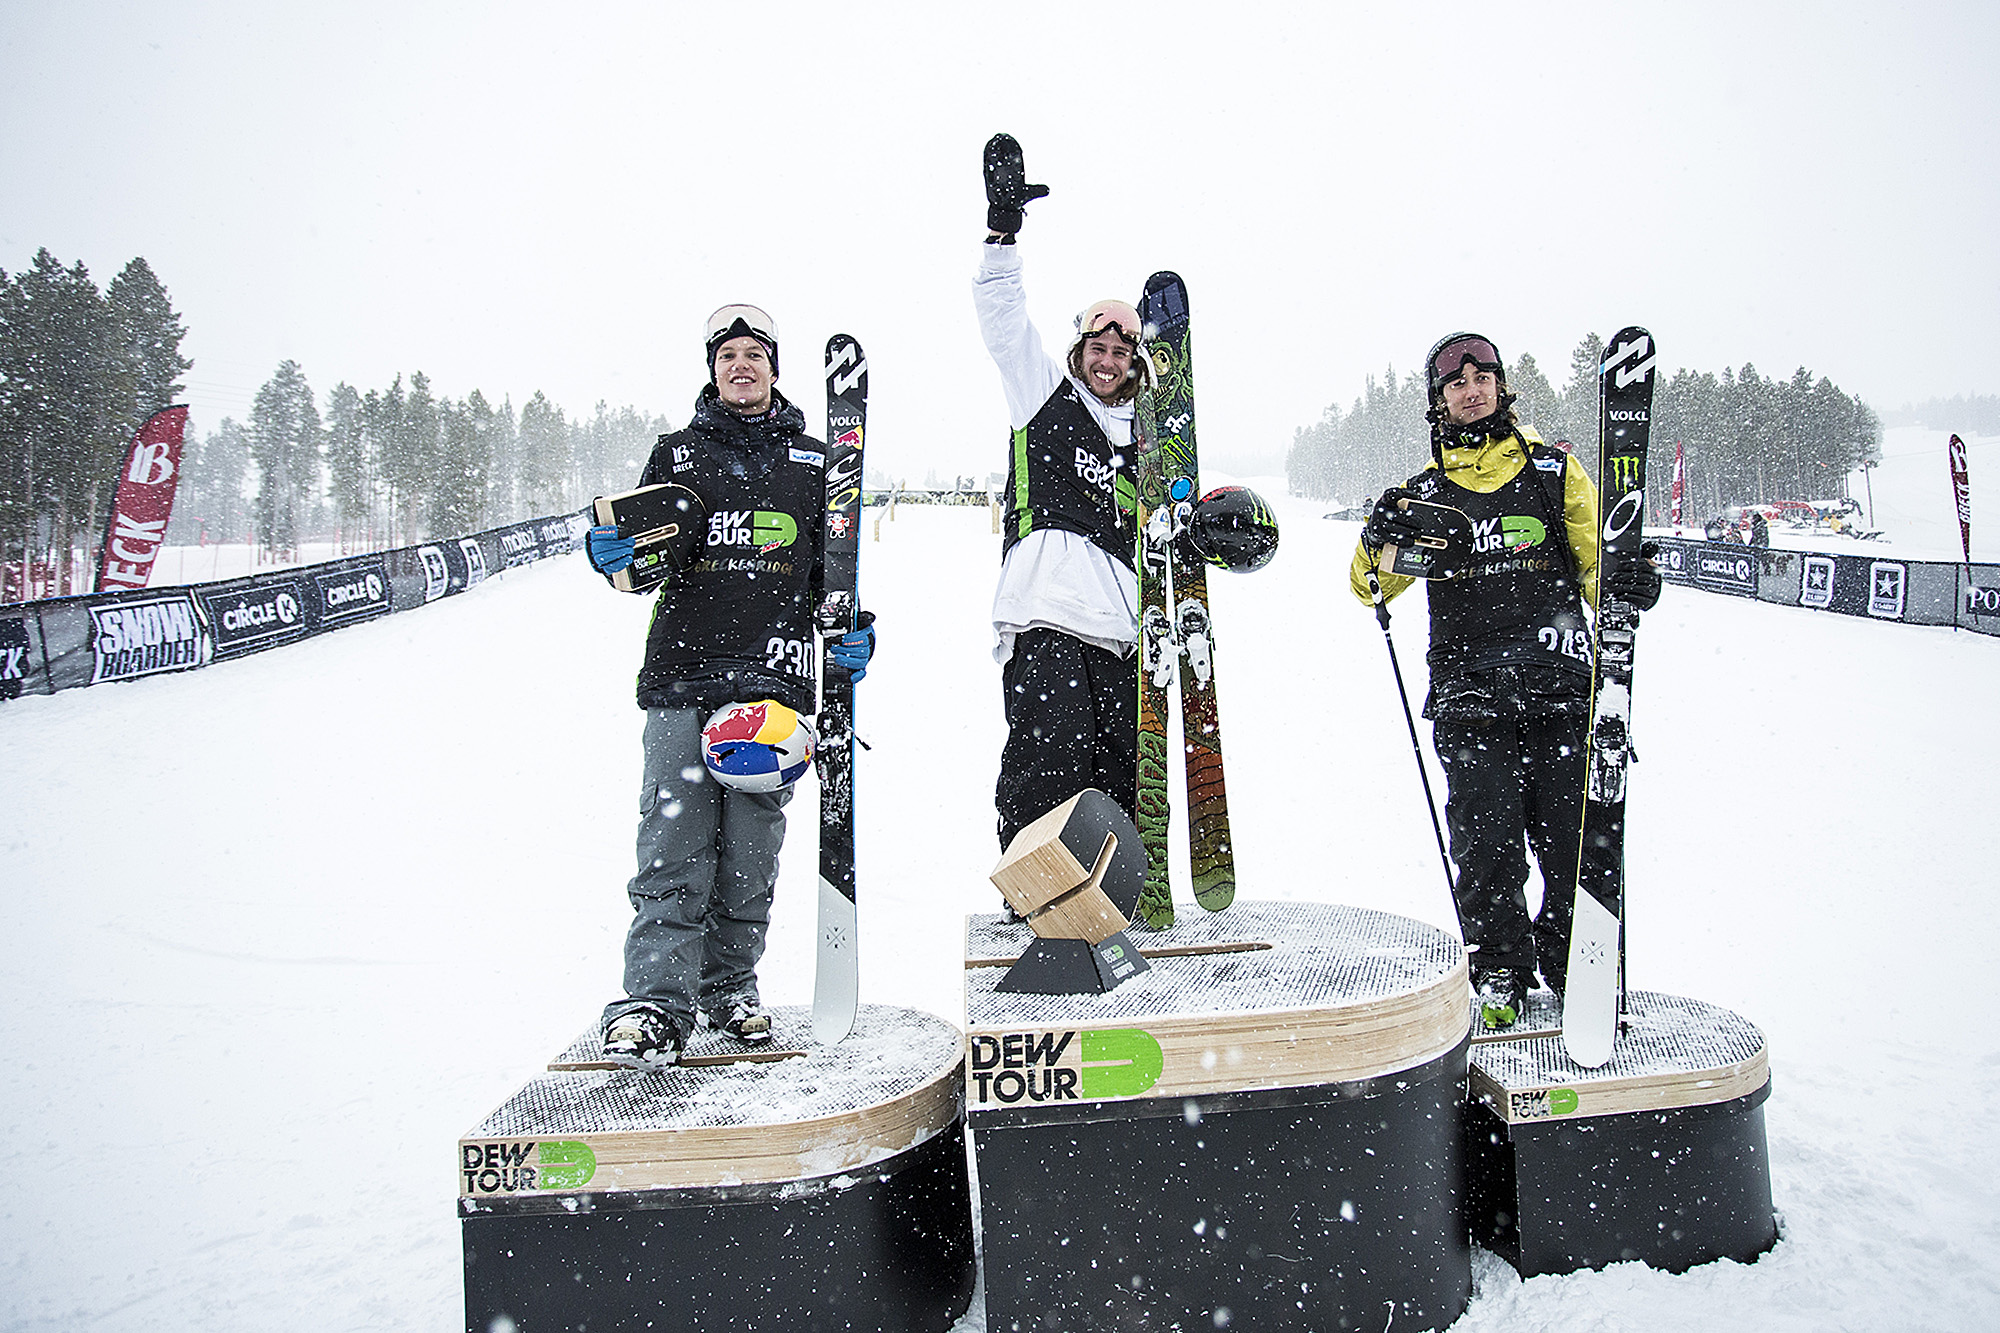 Men's individual competition wrapped up with Henrik Harlaut, Øystein Bråten, and Alex Beaulieu-Marchand atop the podium. Team competitions start Sunday morning.